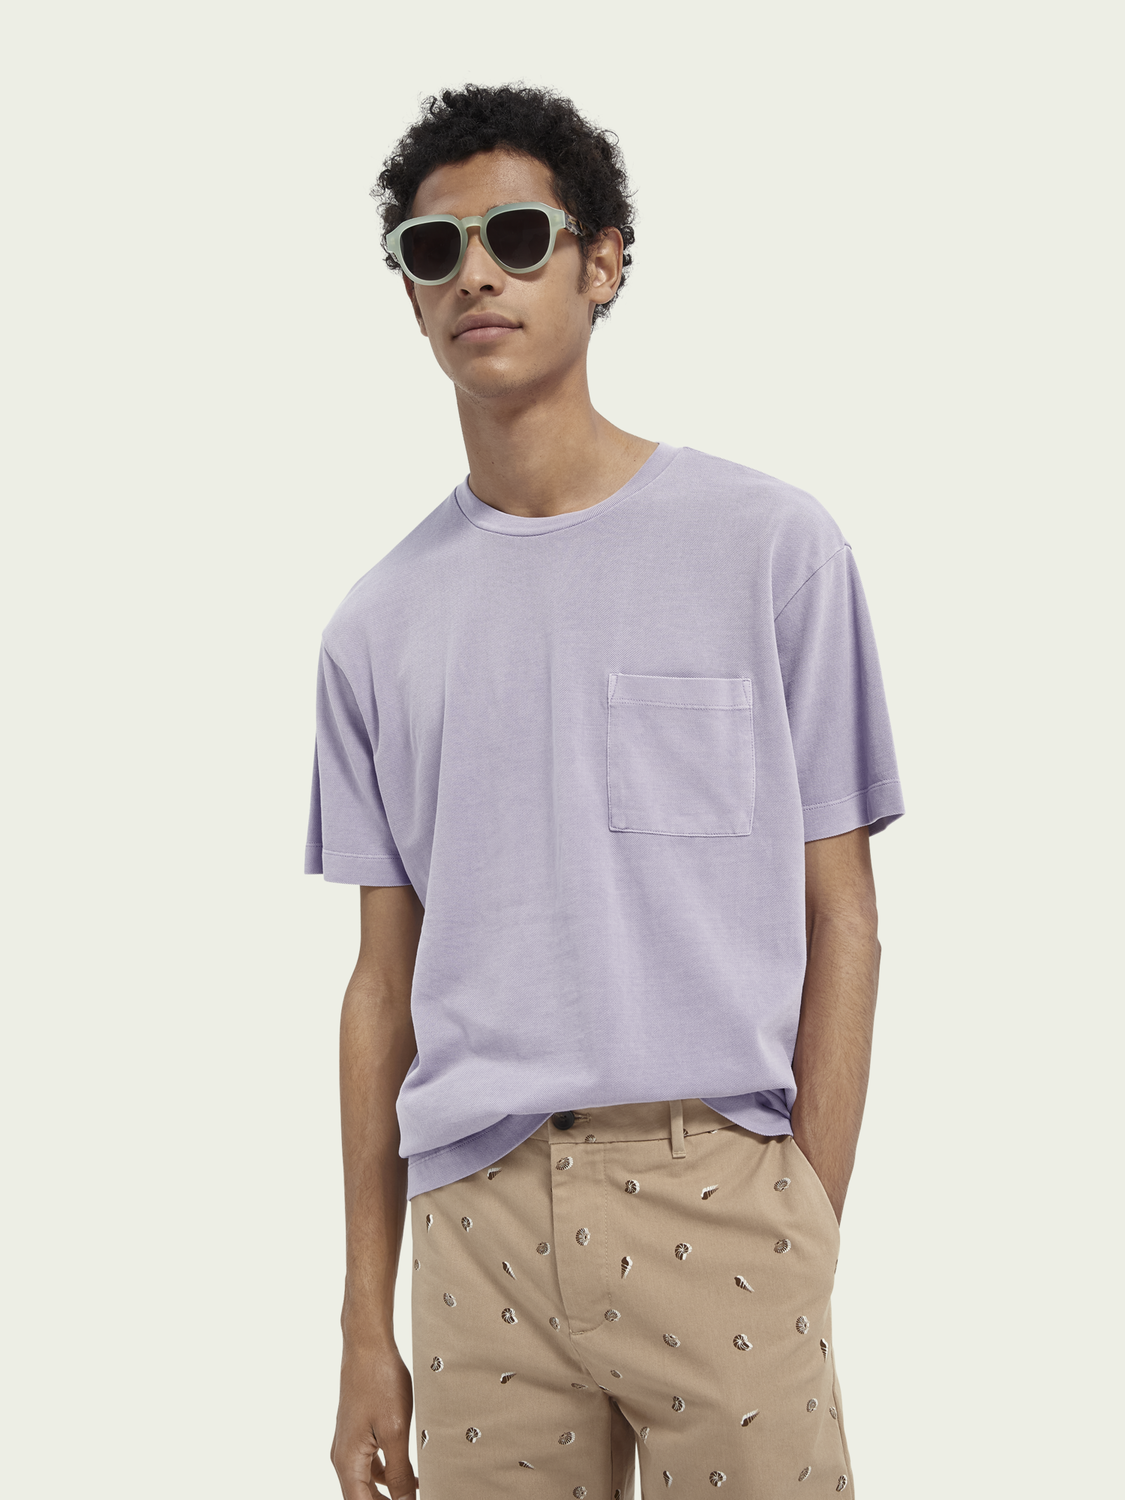 Uomo T-shirt relaxed fit in cotone biologico